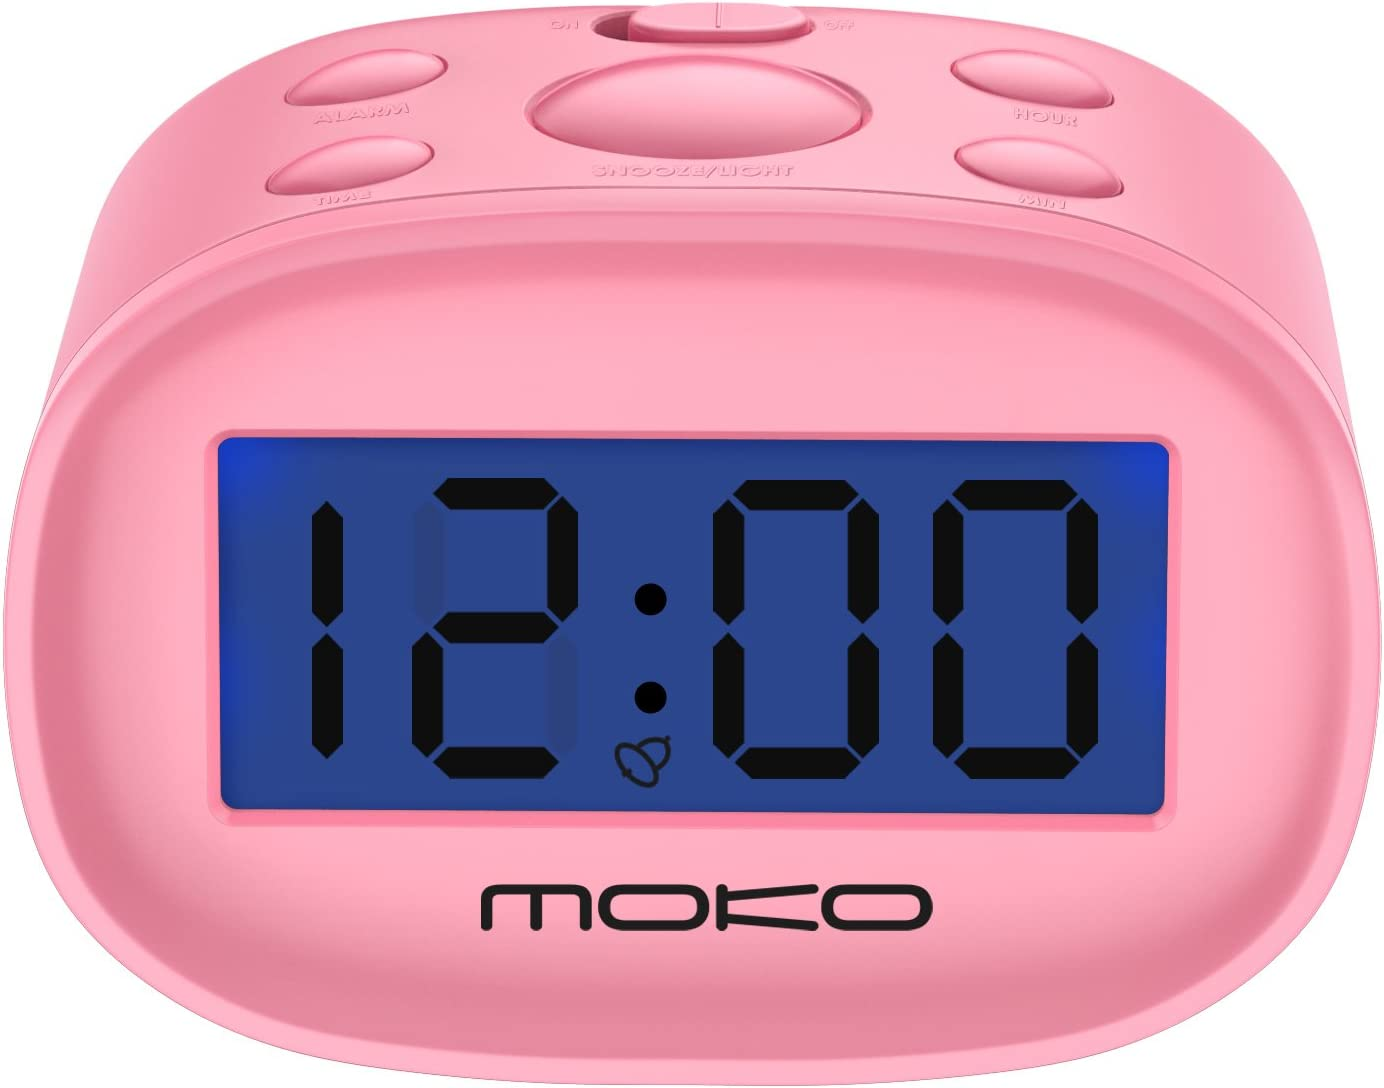 Kids Alarm Clock, MoKo High Accuracy Mini LCD Display Digital Clock Night Light Travel Bedside Alarm Clocks with Snooze Time Backlight Electronic Home Office Table Clock - Pink